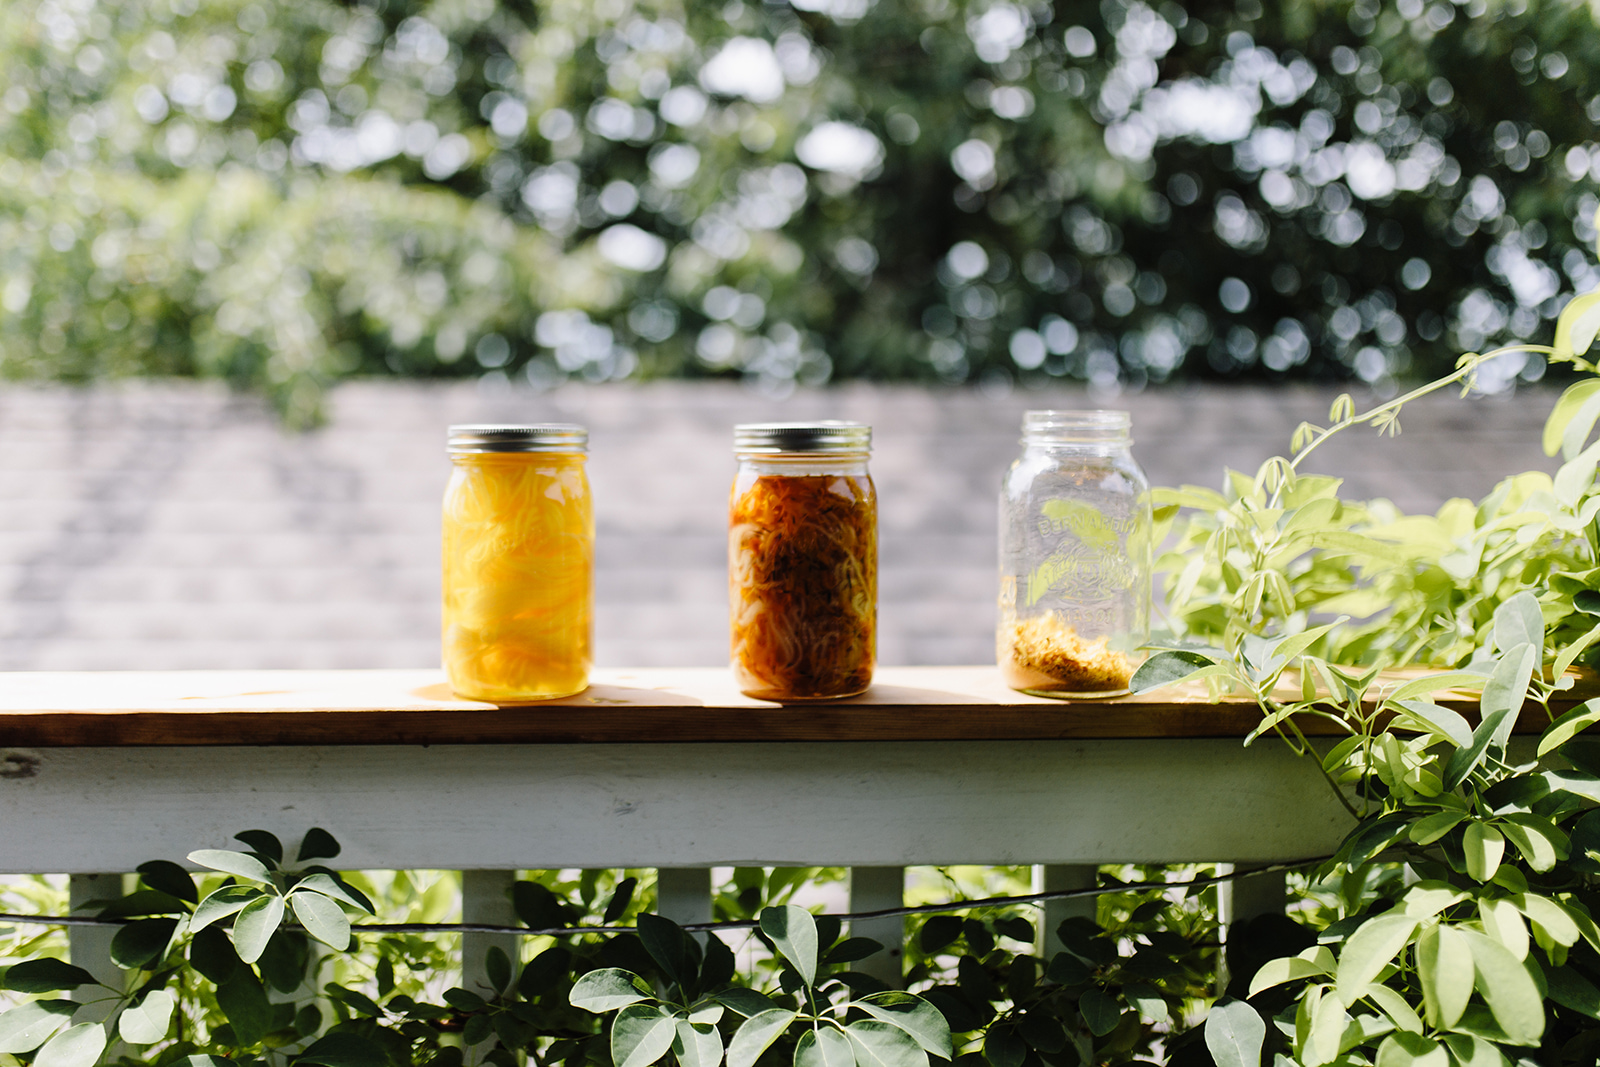 gathering the natural dyestuffs for your solar dye. shown here are marigolds collected from the garden